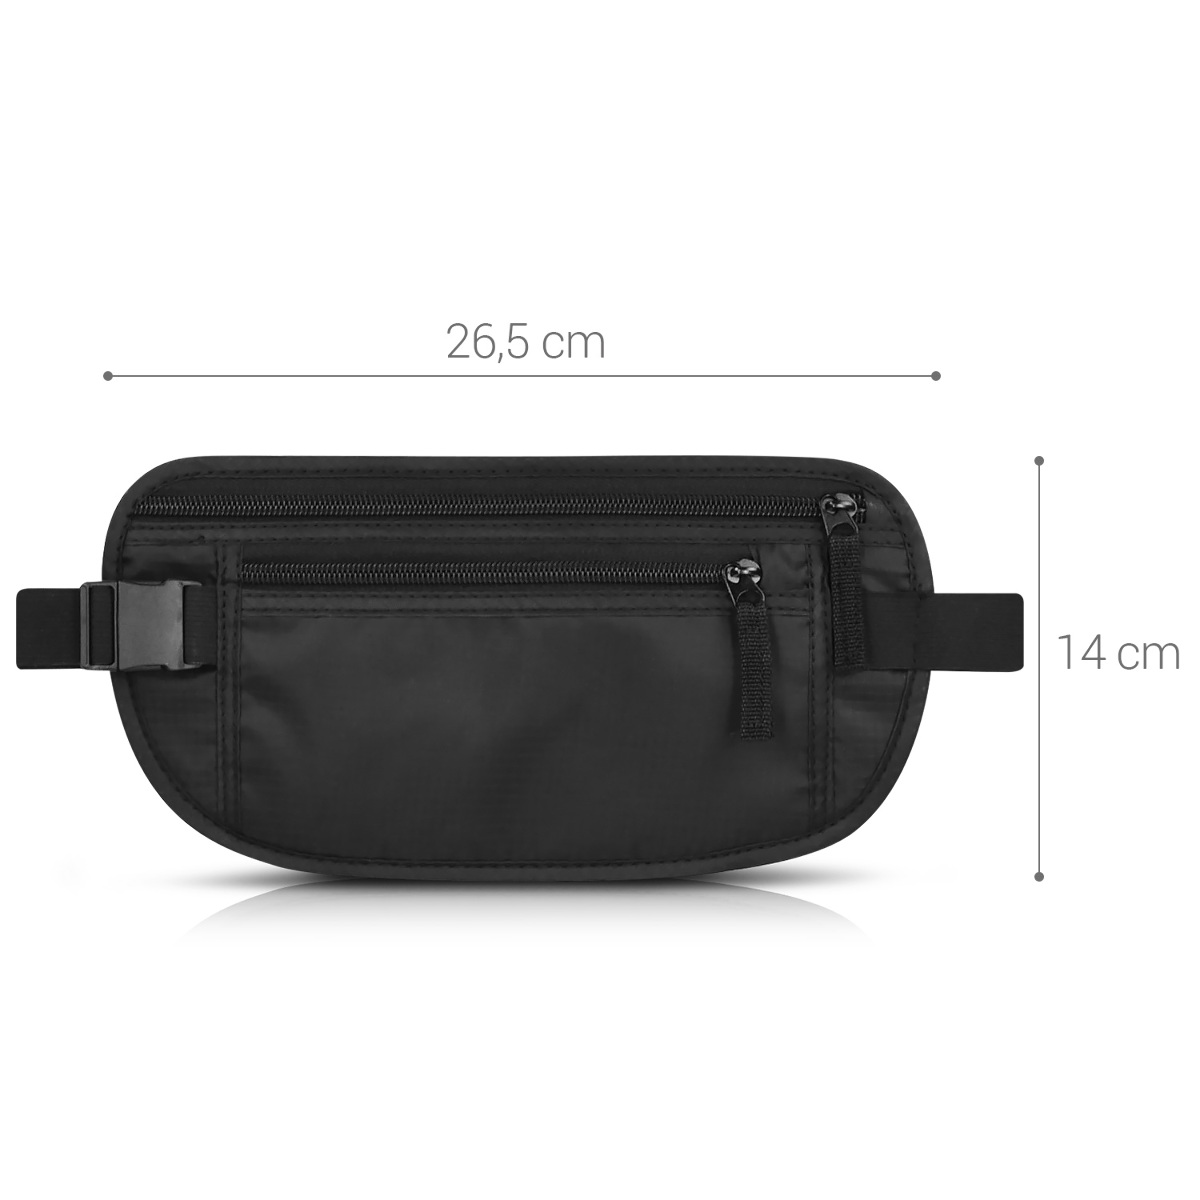 faa9449bf kwmobile fanny pack cards protective cover RFID blocker -Flat hip bag with RFID  protection to travel - Travel fanny pack bag document bag black - Unisex ...